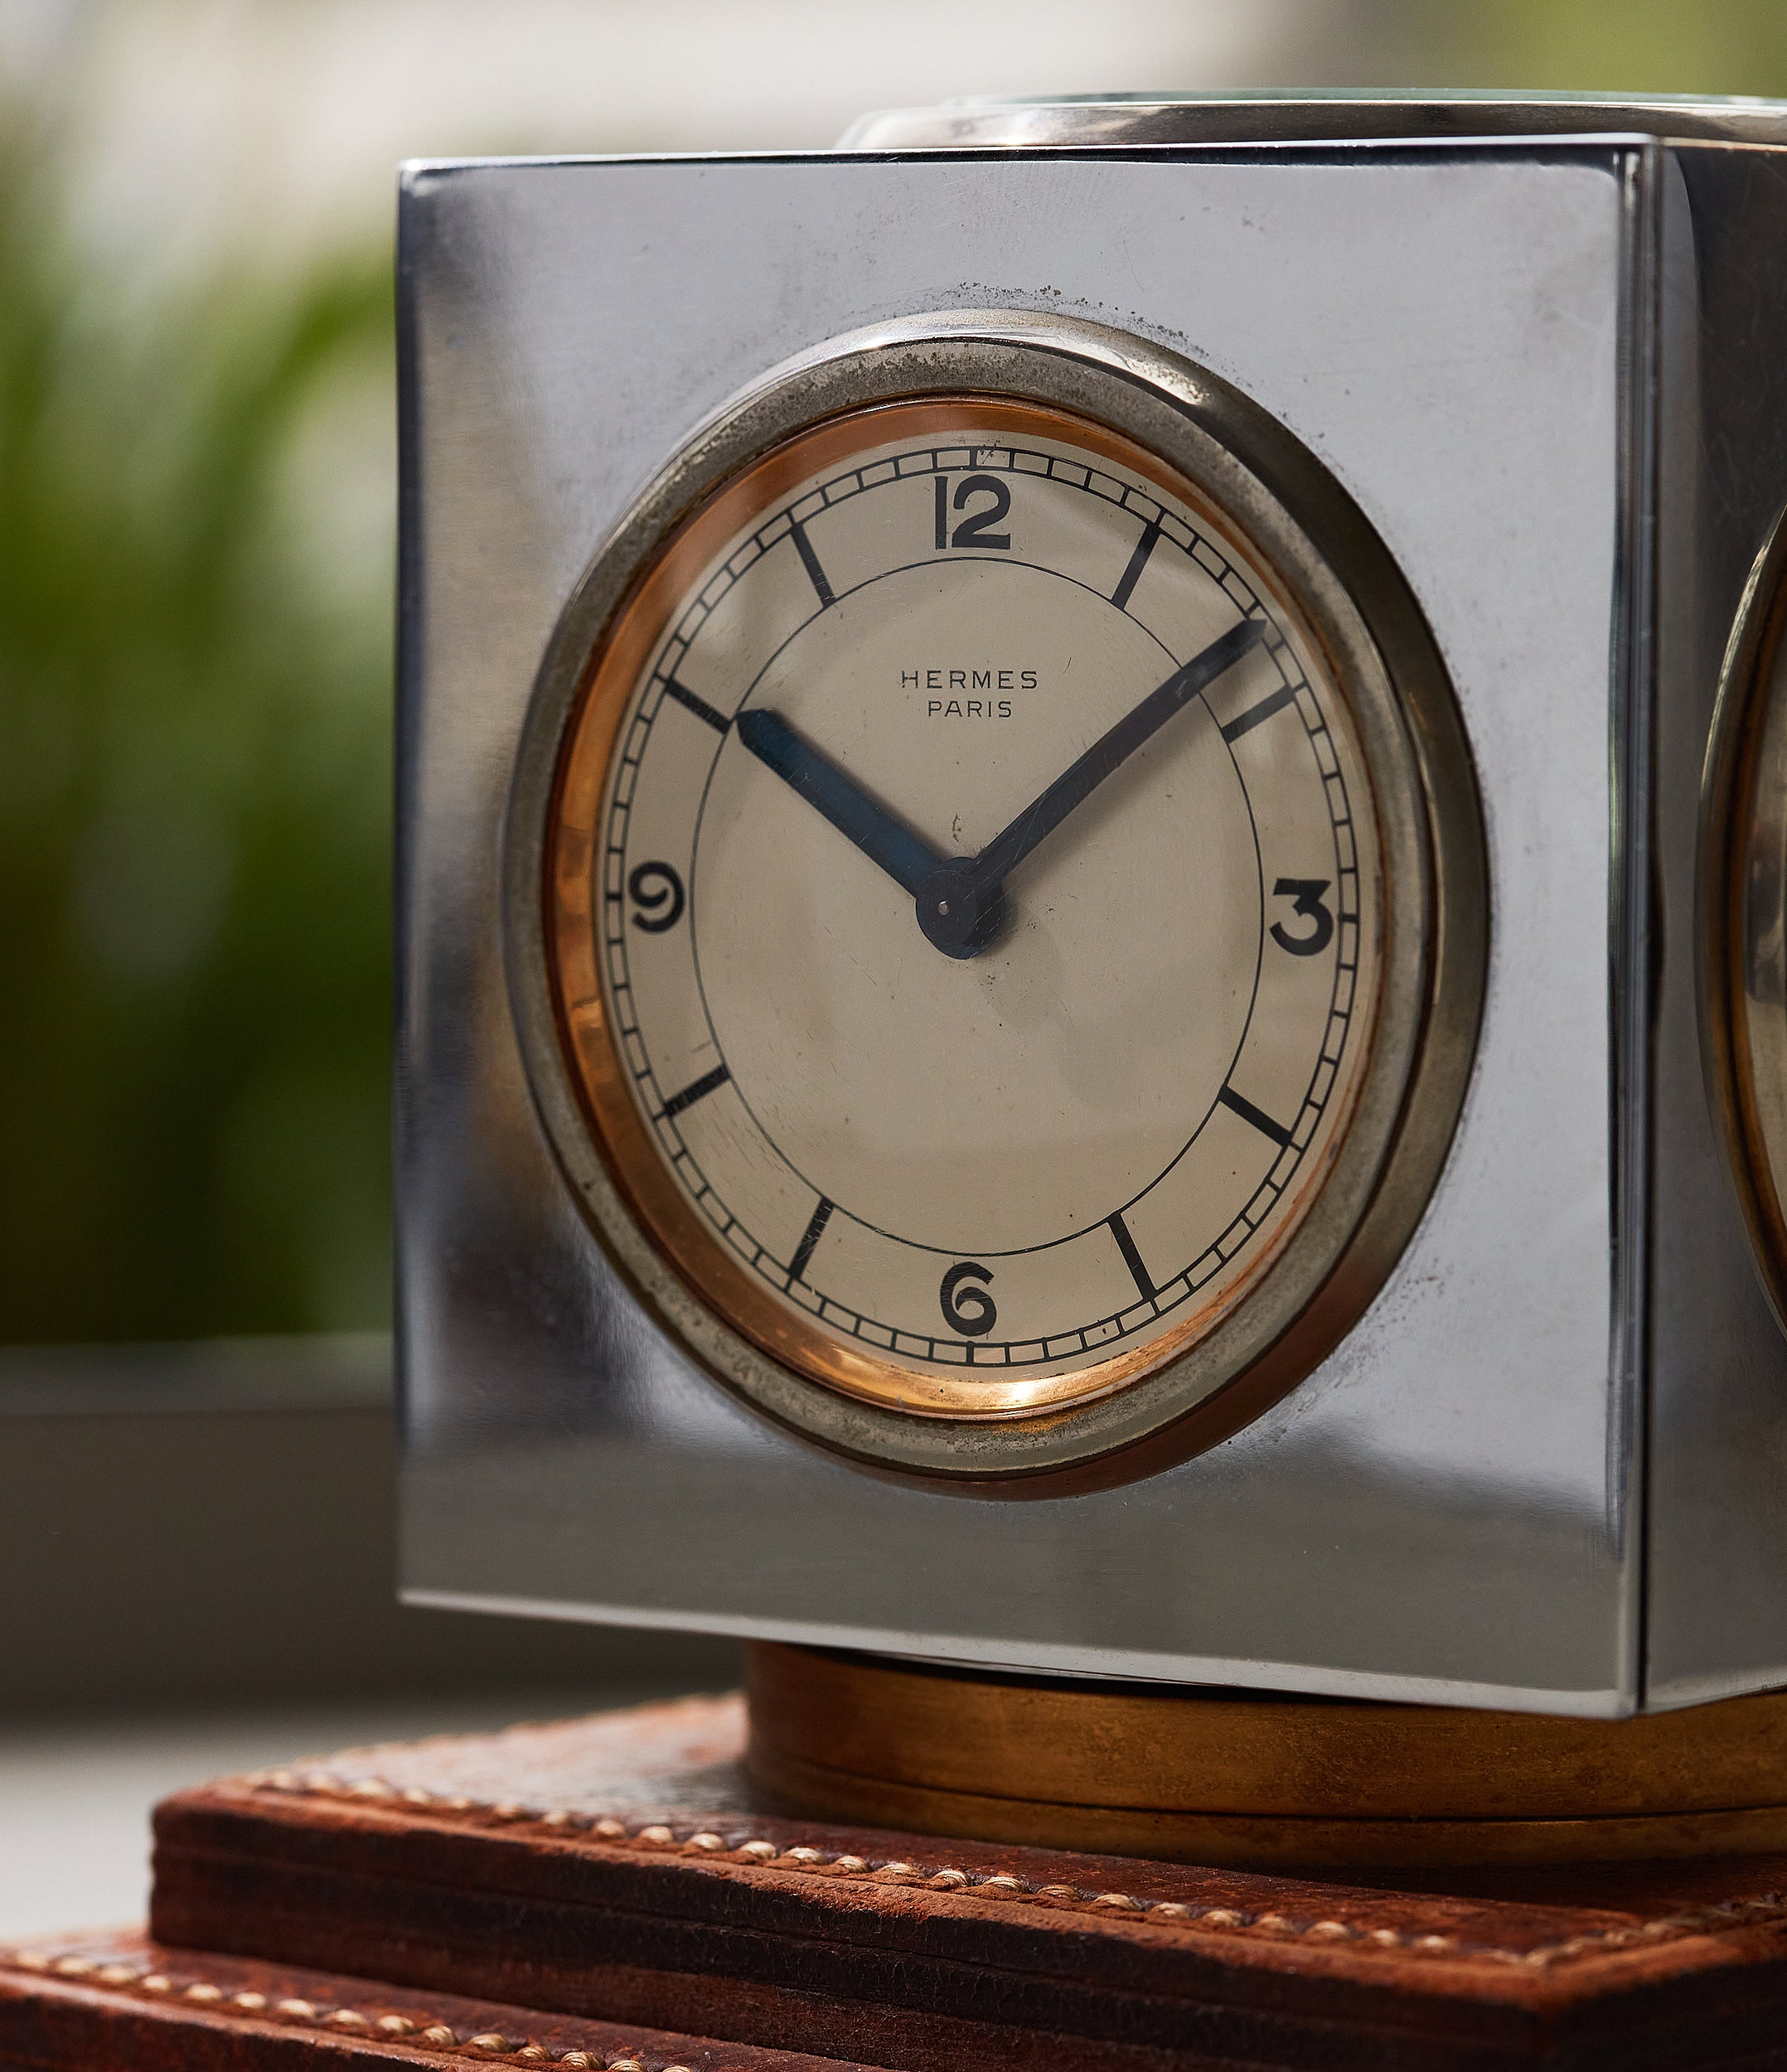 Hermes compendium desk clock in How Paul Dupré-Lafon Became 'The Decorator of Millionaires' for A Collected Man London